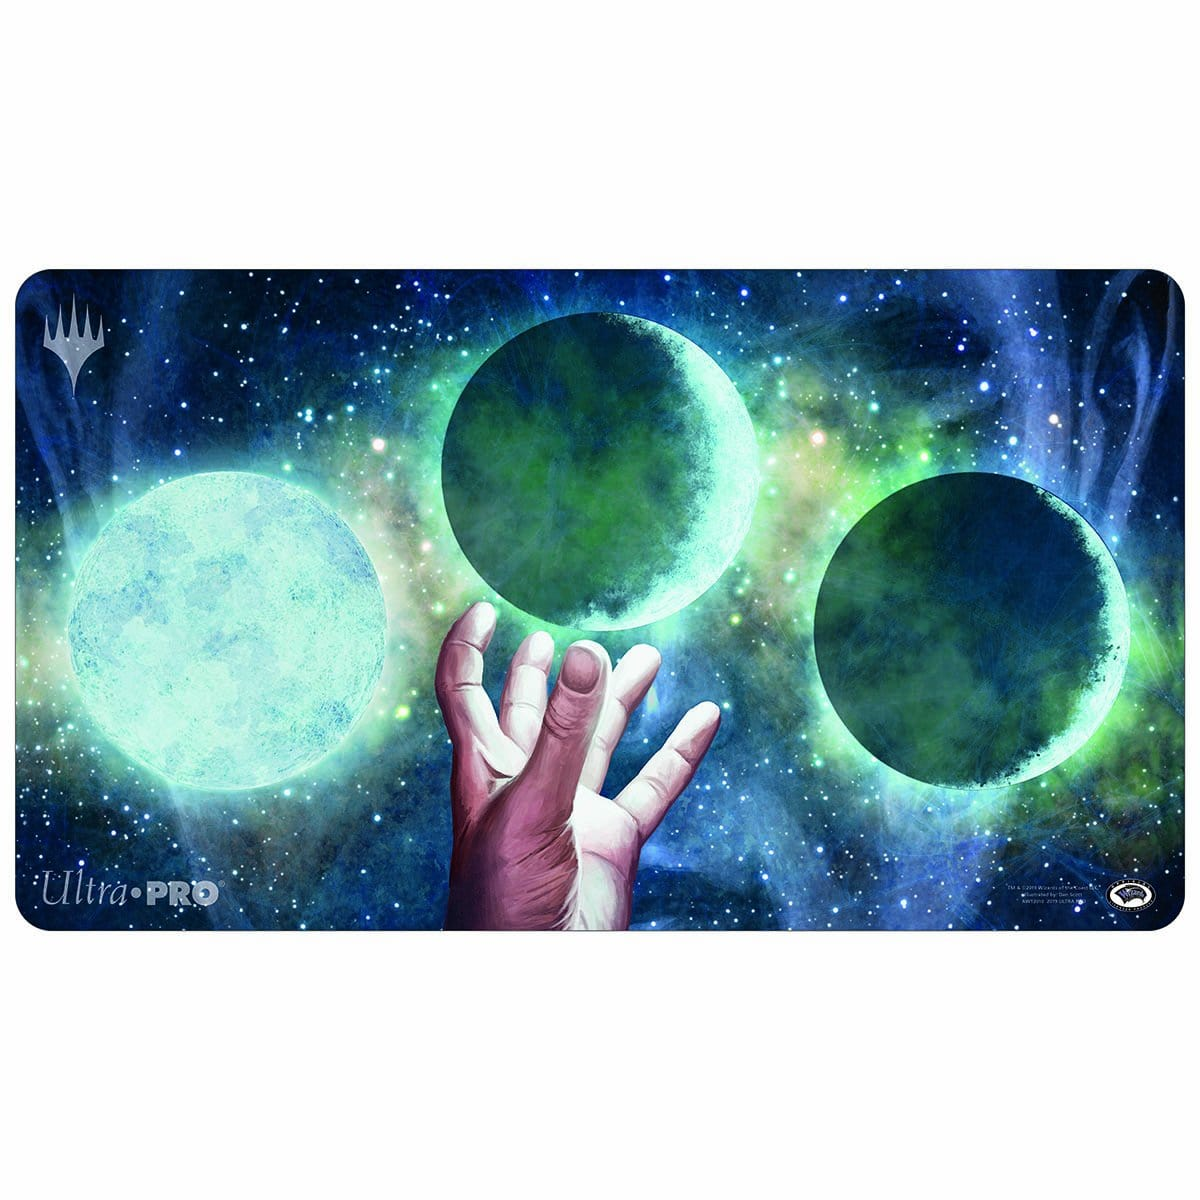 Ponder Playmat - Playmat - Original Magic Art - Accessories for Magic the Gathering and other card games